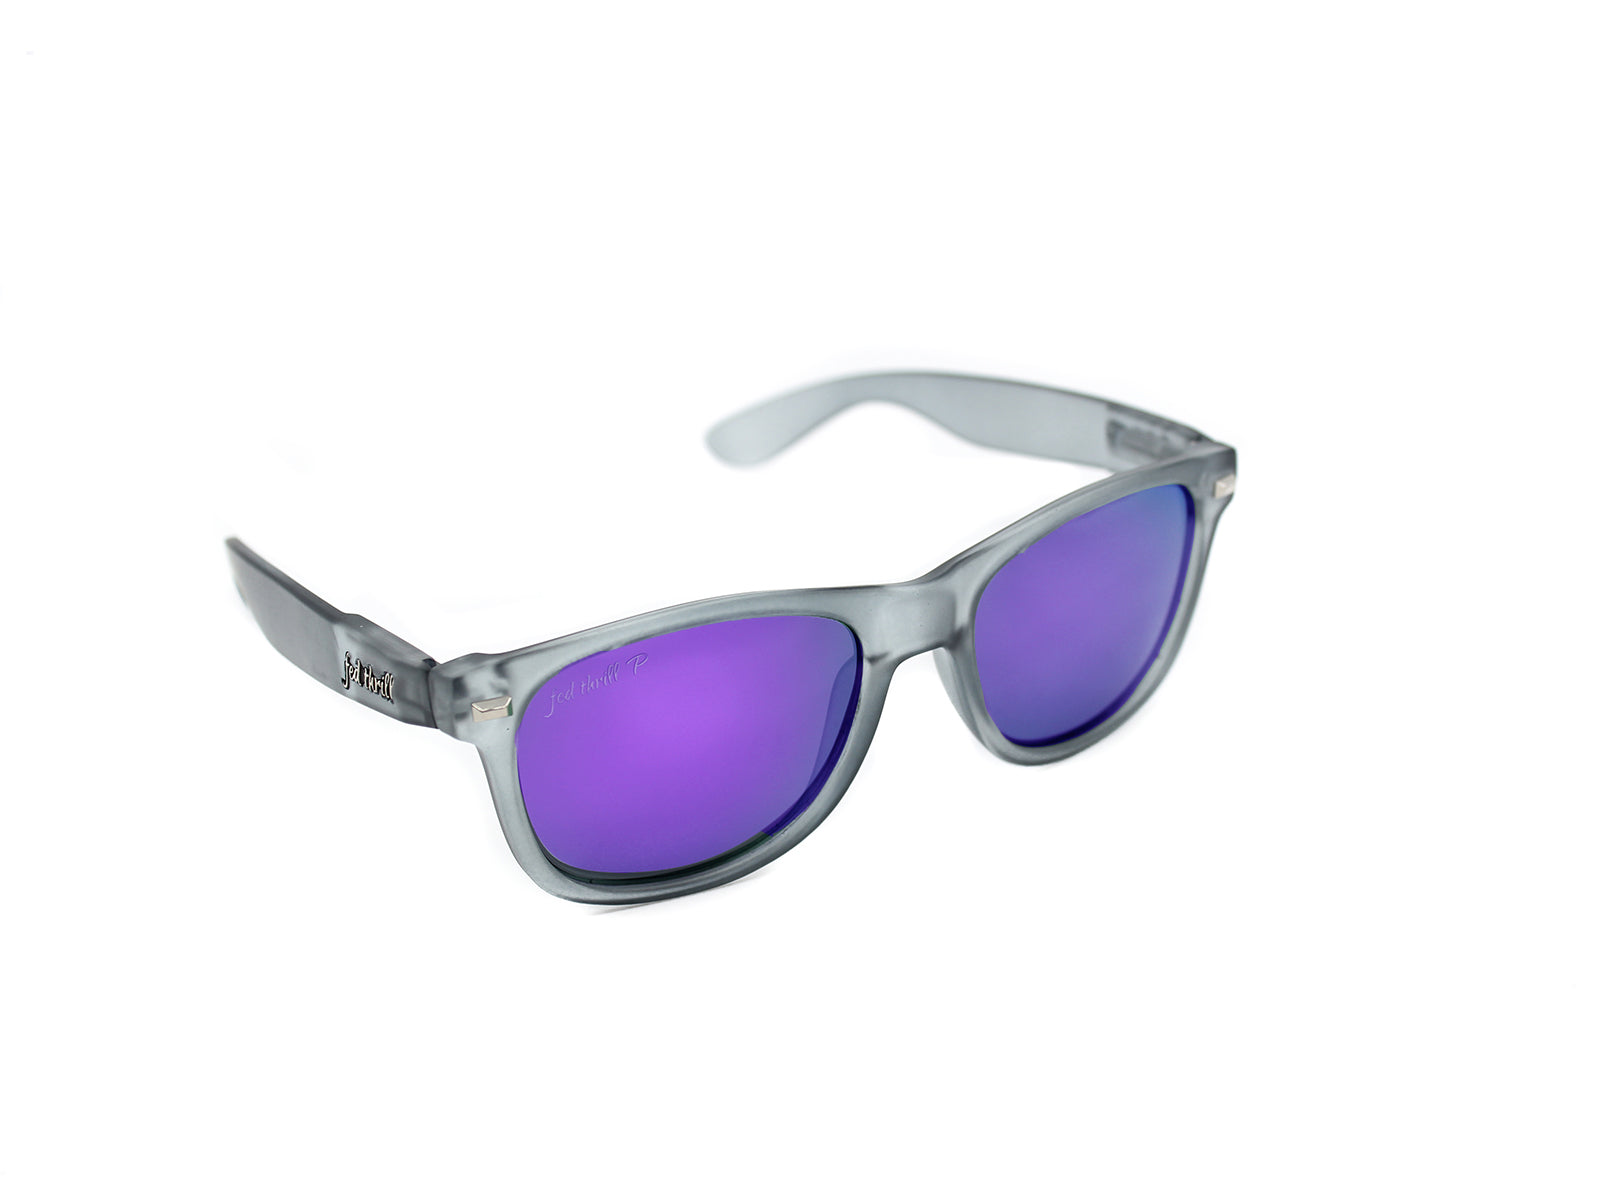 Fultons - Pratts: Frosted Gray / Mirrored Purple Polarized